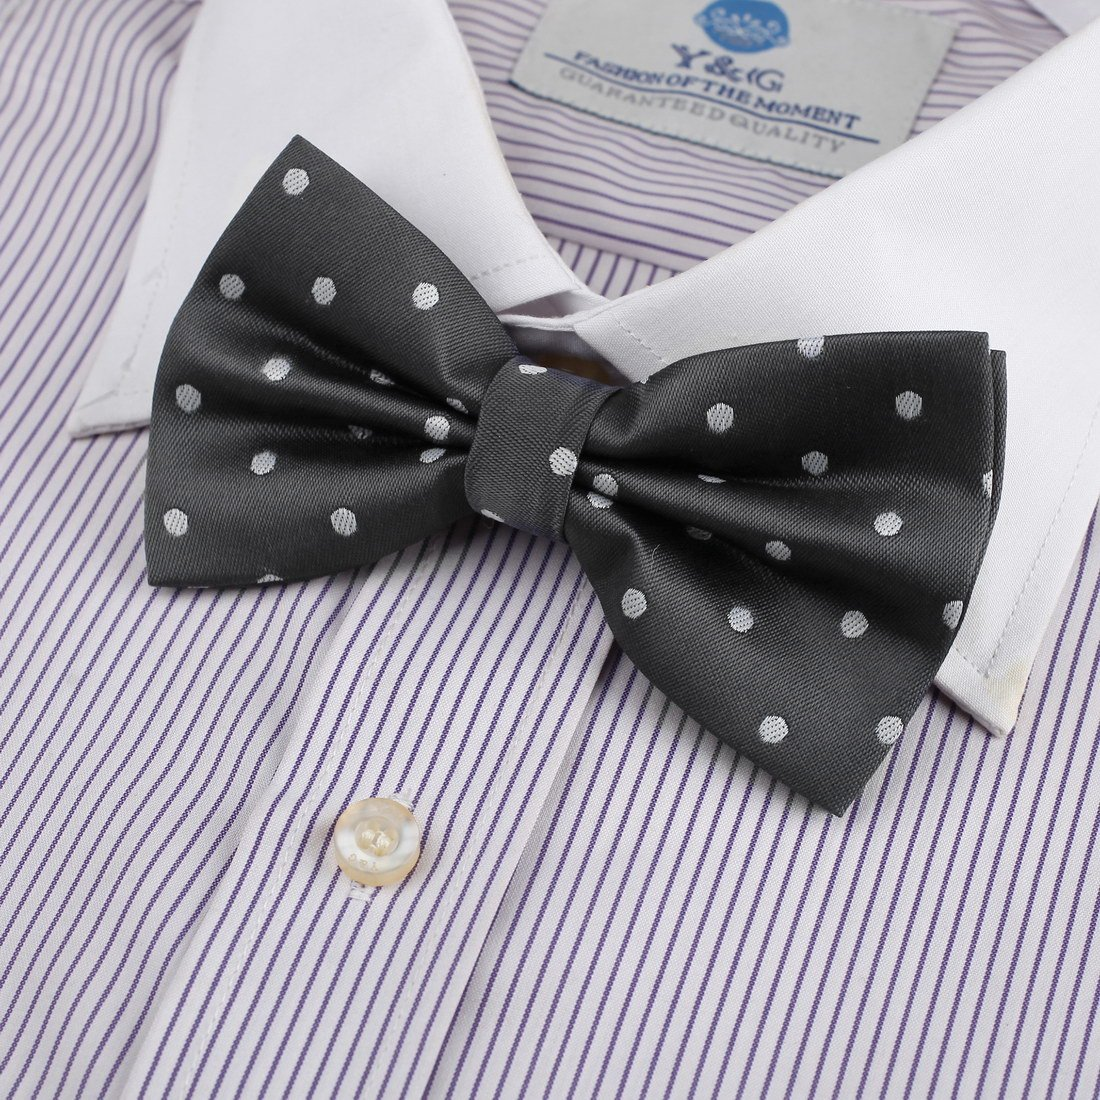 DBD3D01J Dark Red Polka Dots Woven Microfiber Management Gift Pre-tied Bow Tie By Dan Smith